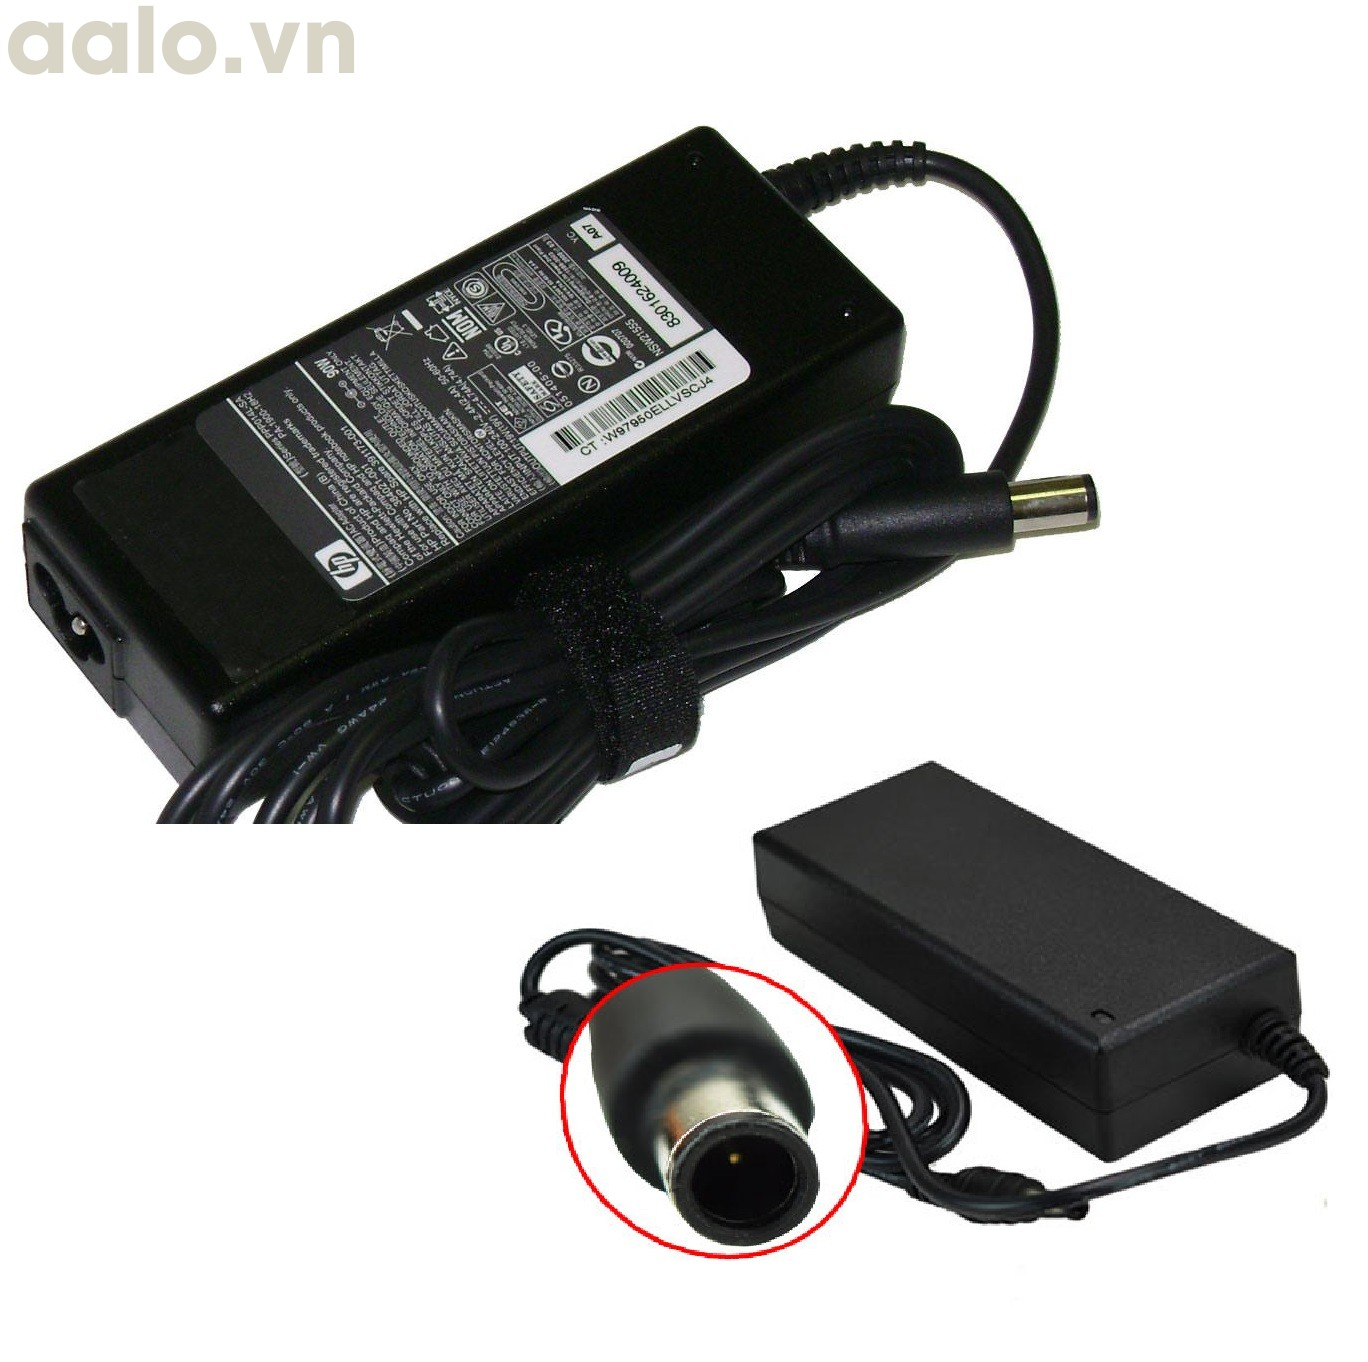 adapter hp kim 19v 4.7a kim